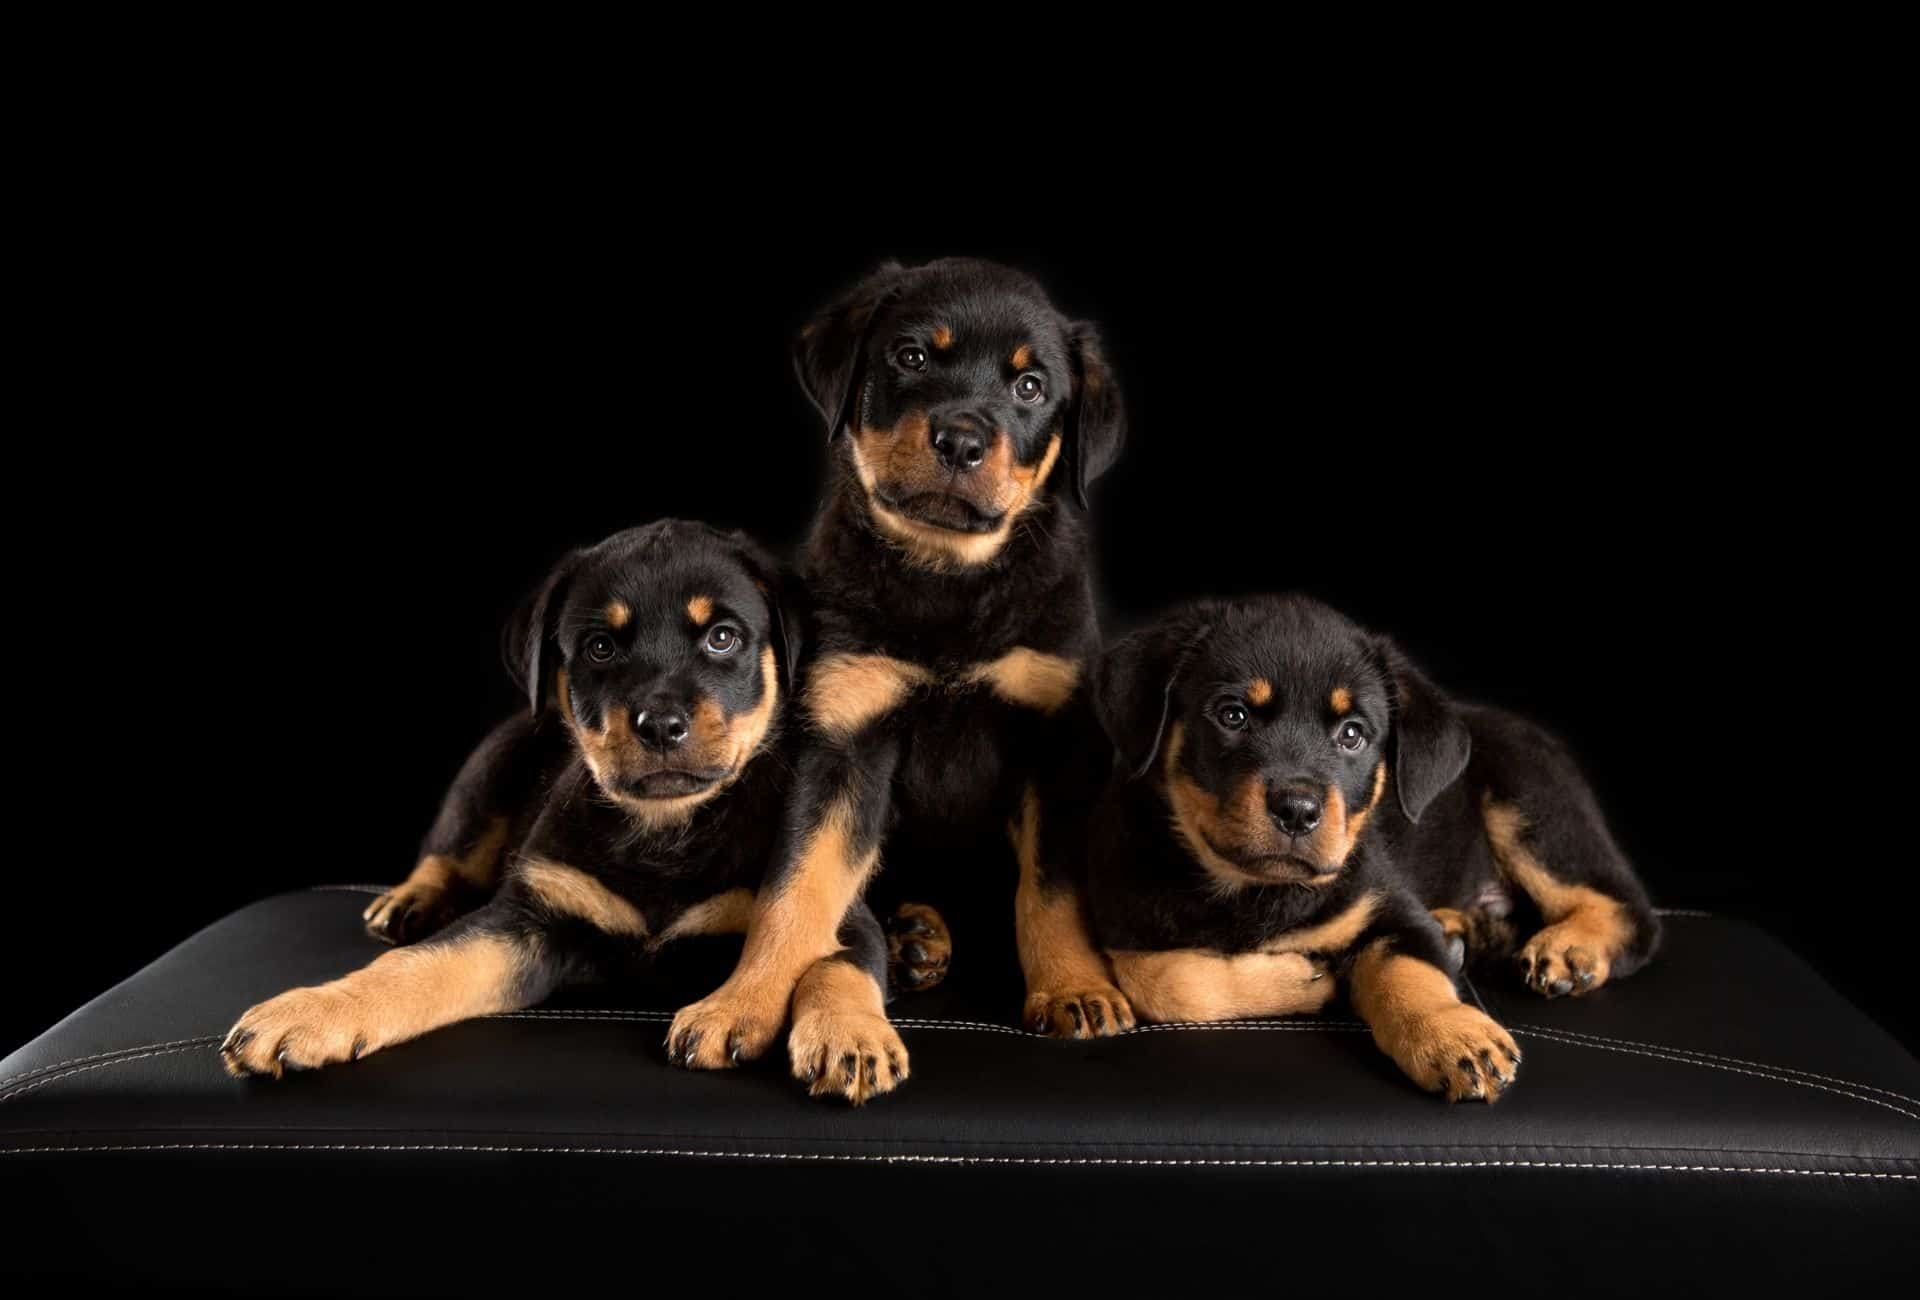 Three Rottweiler puppies posing in front of black background. Getting three sibling puppies can set you up for littermate syndrome.